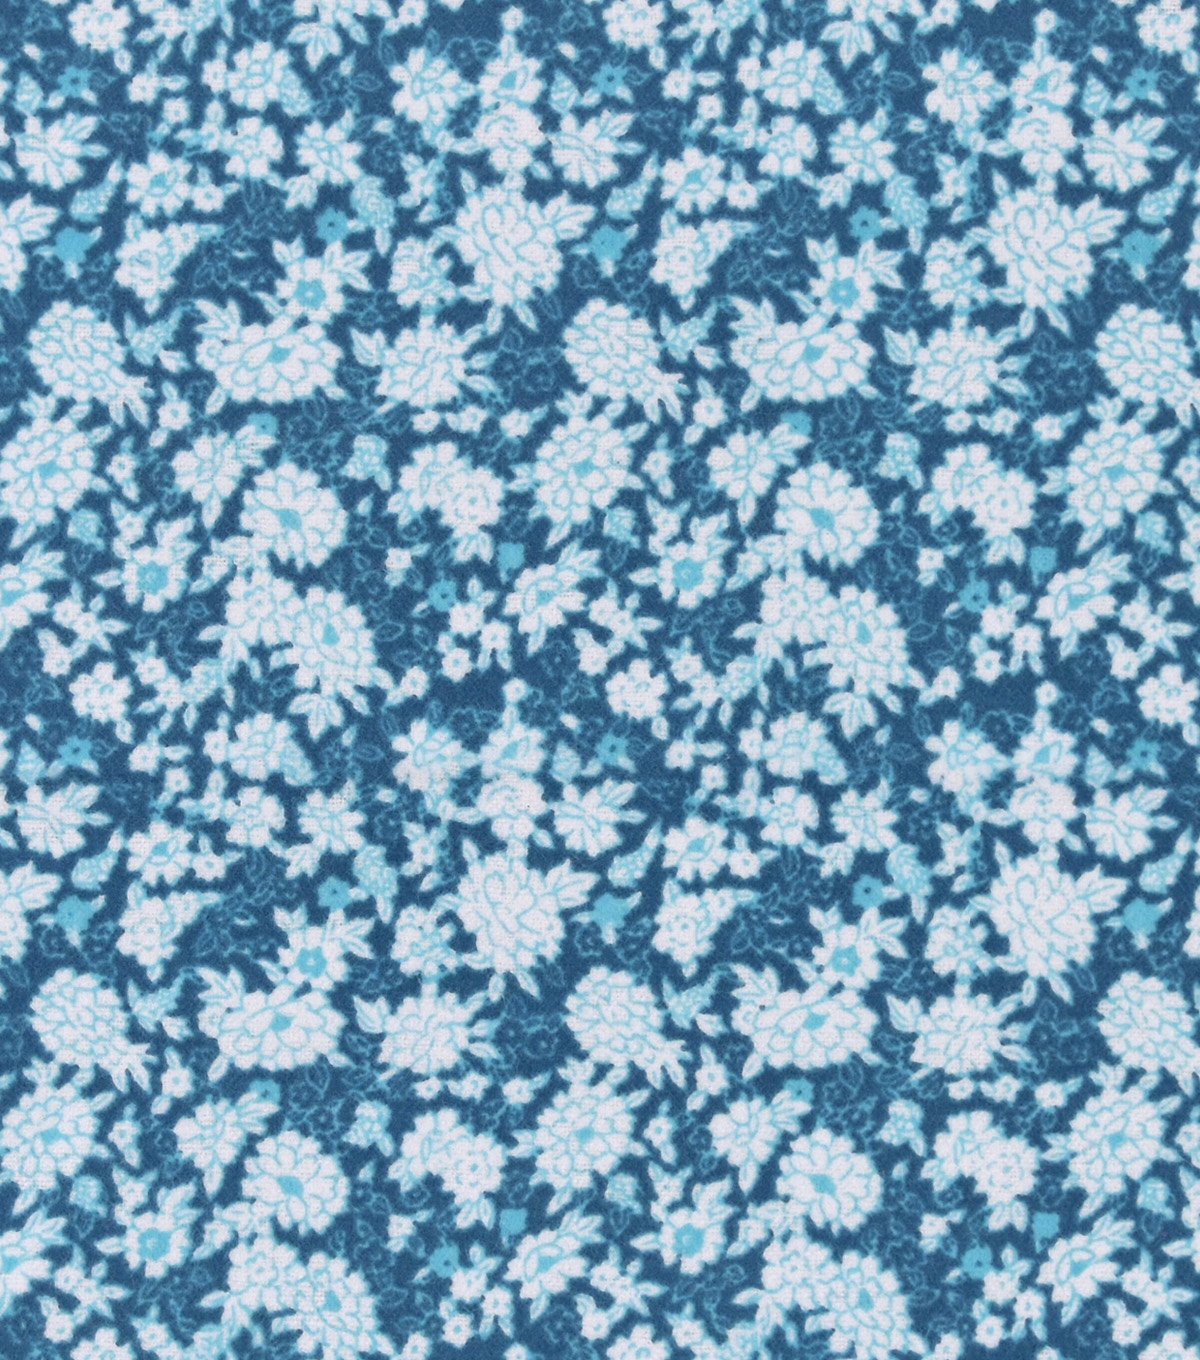 Snuggle Flannel Fabric 42''-White Floral on Teal